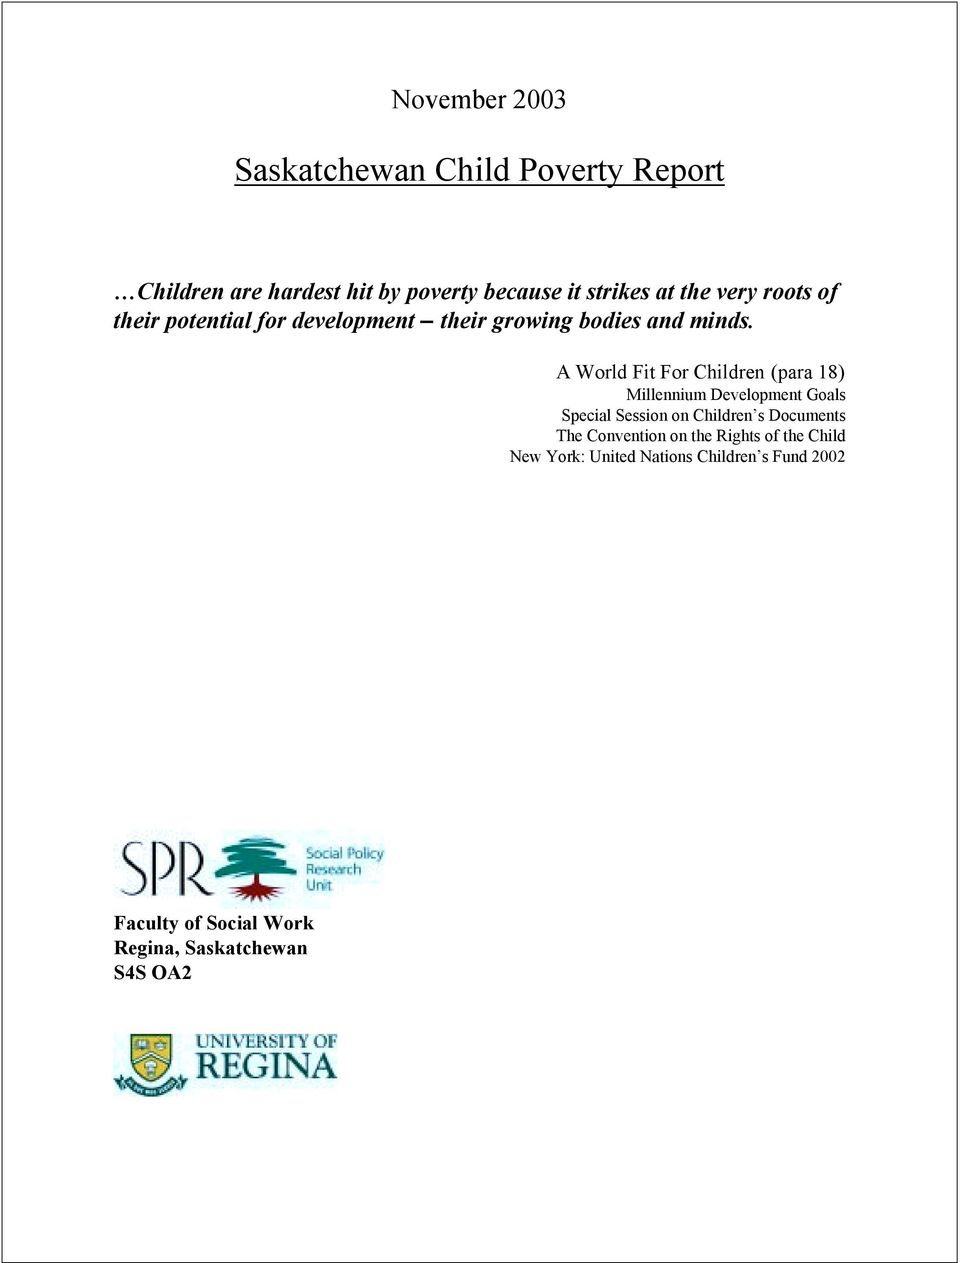 A World Fit For Children (para 18) Millennium Development Goals Special Session on Children s Documents The